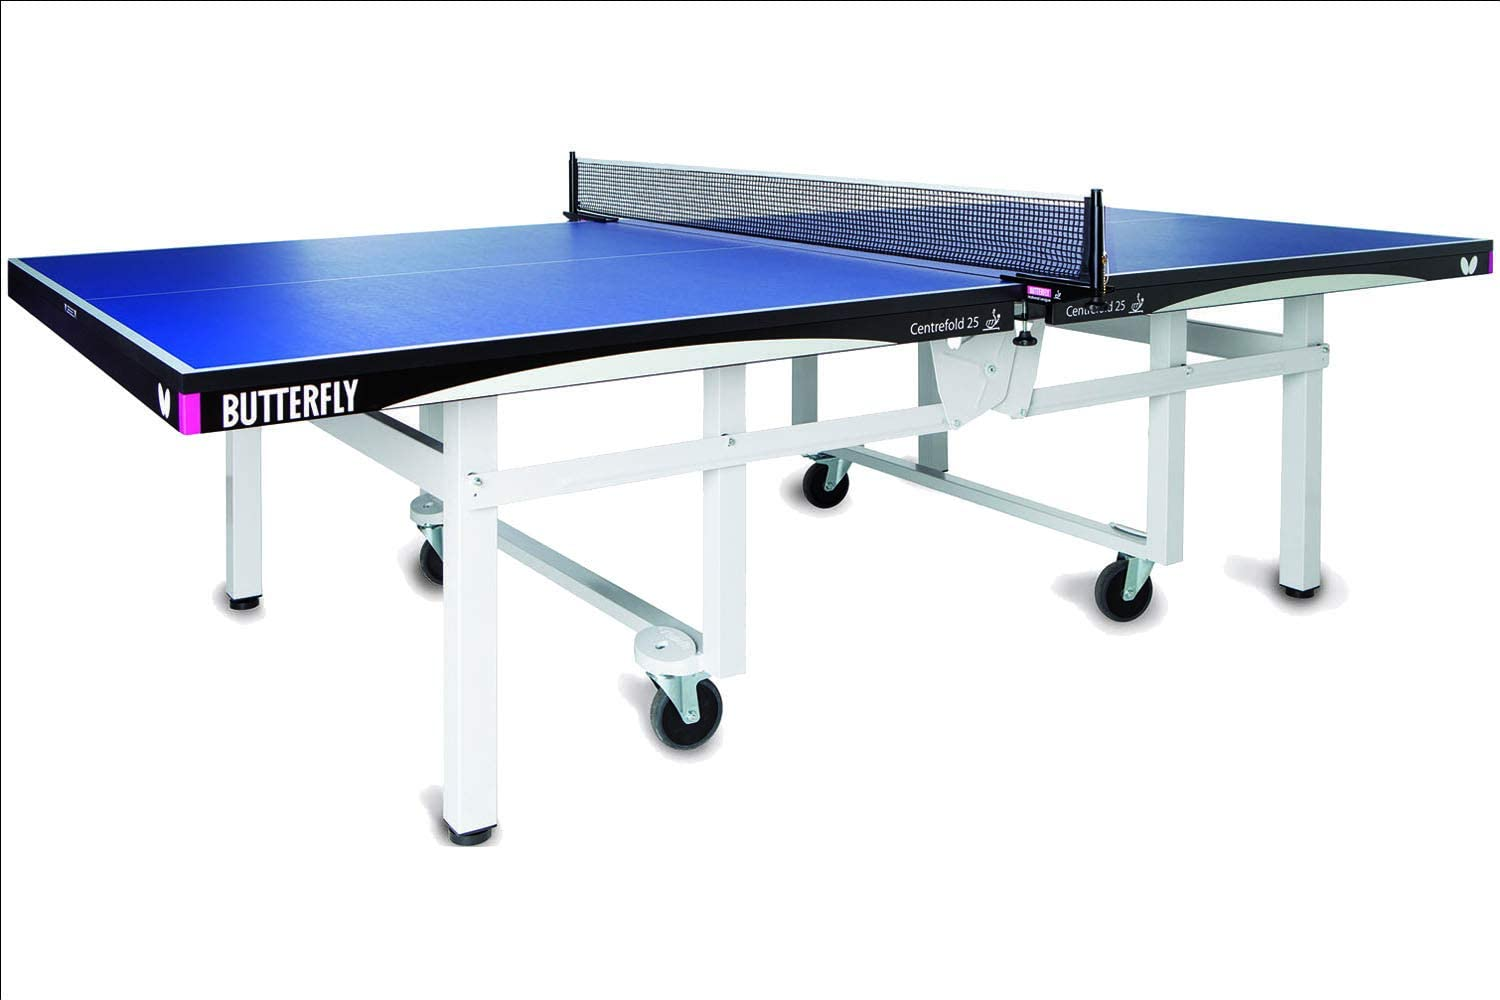 Butterfly Centrefold 7 Table Tennis Table—Indoor Rollaway Ping Pong  Table—7-Year Warranty Game Table—ITTF Approved—For Tournaments & Clubs—Free